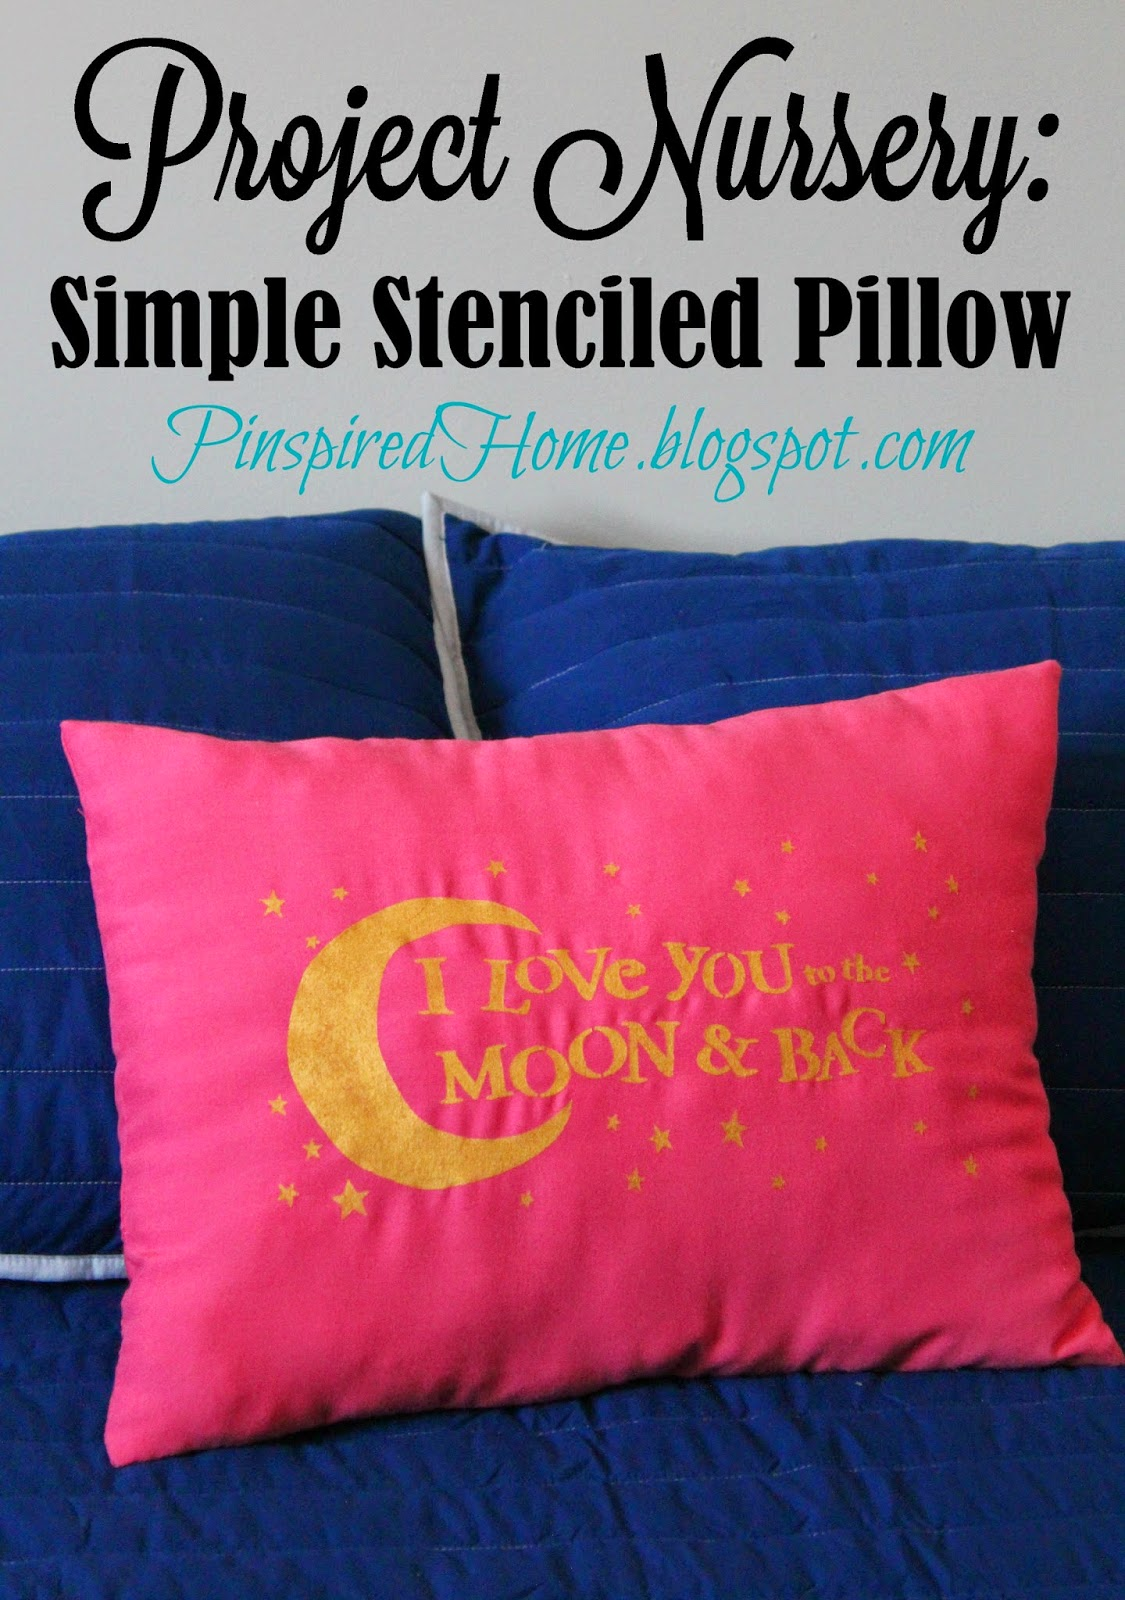 http://pinspiredhome.blogspot.com/2015/03/simple-stenciled-pillow.html